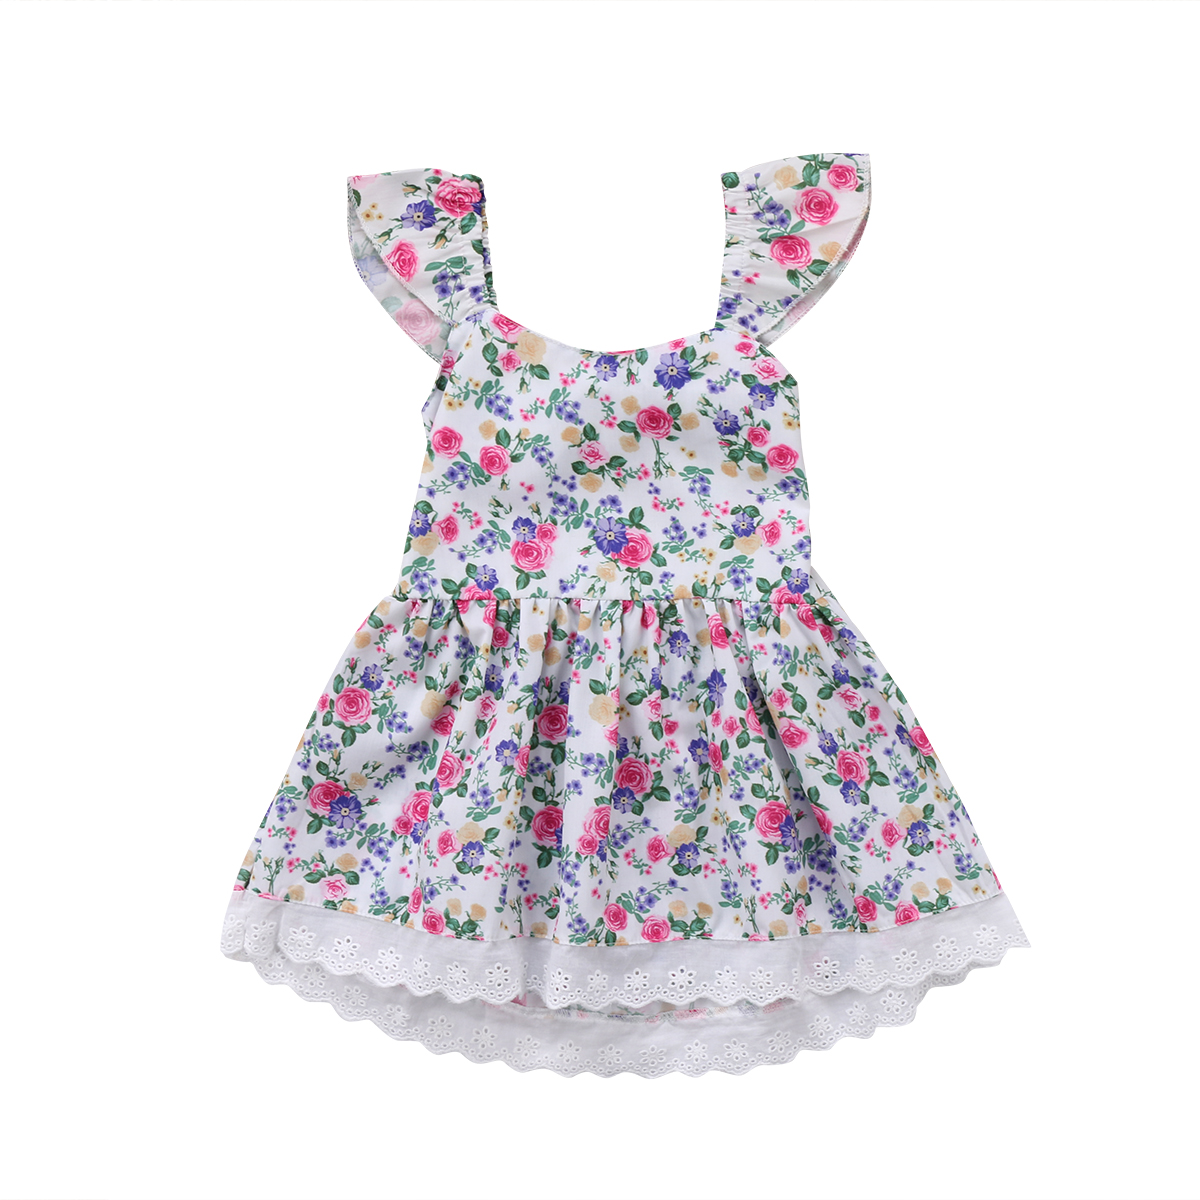 Flower Princess Dress Girl Kids Baby Party Wedding Pageant Floral Casual Dresses Children Enfant Girls Print Flower Sundress платье для девочек party dresses for girls baby 2 11 casual girl dress